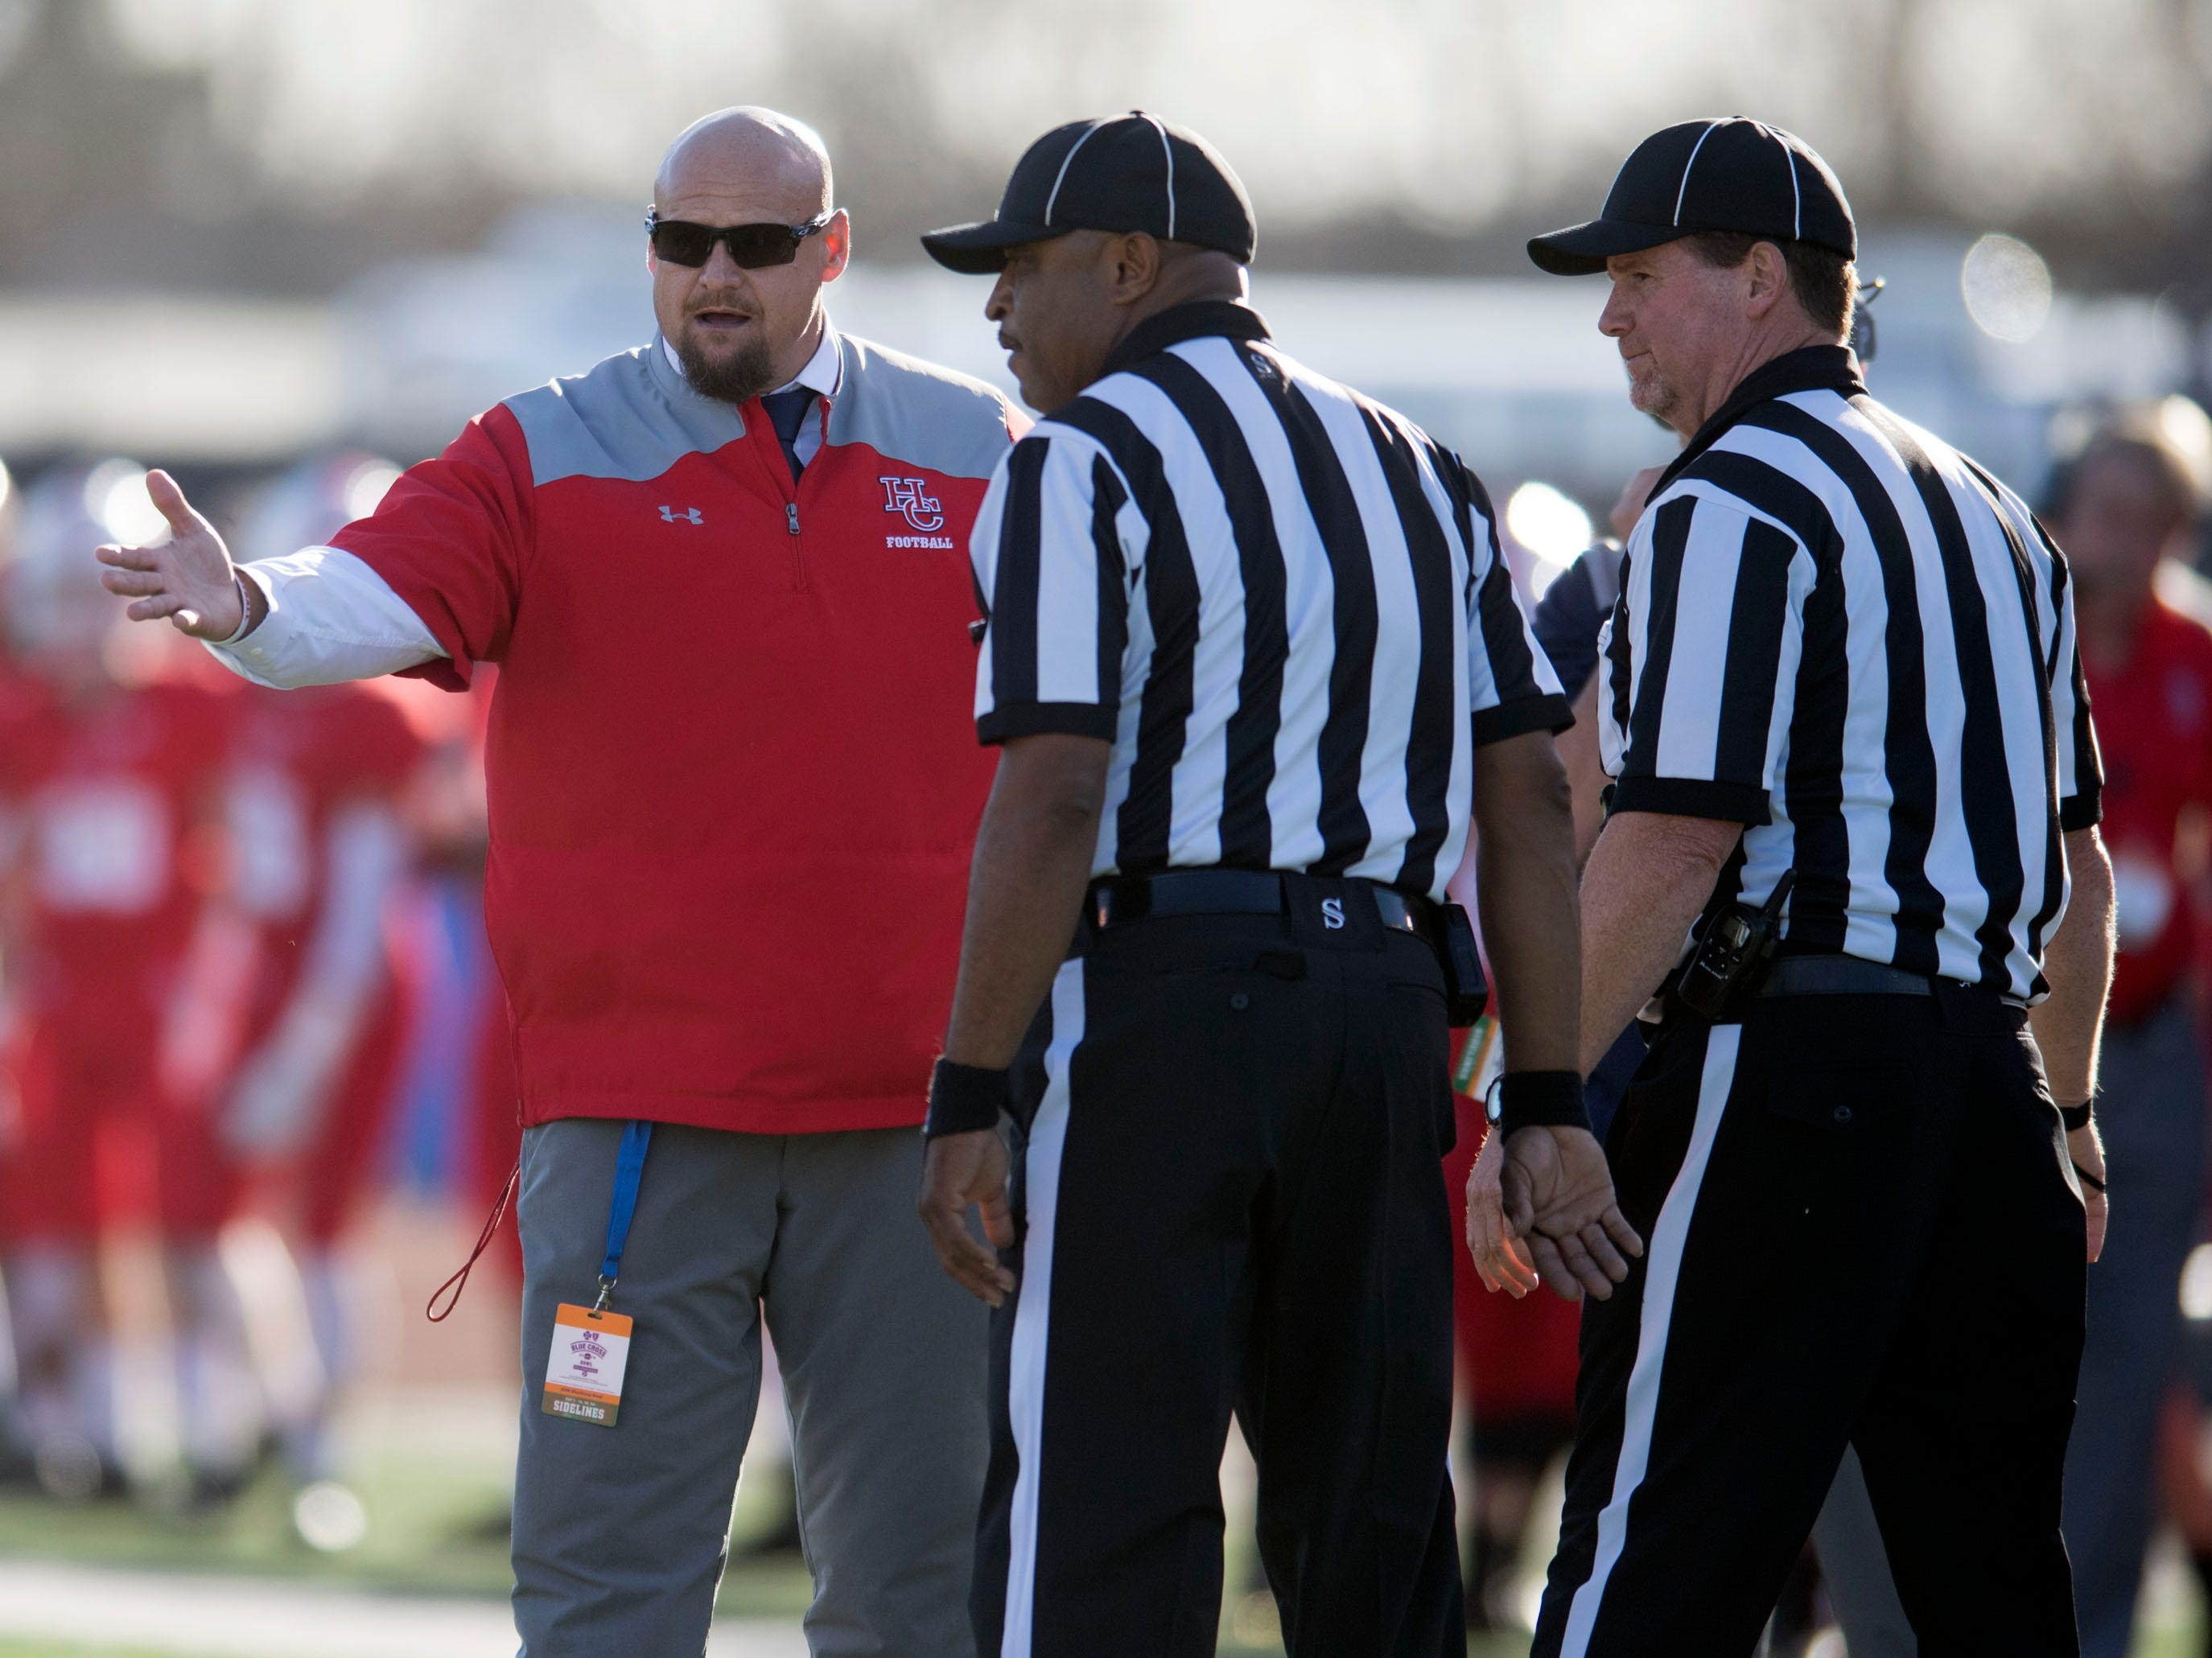 Henry County head coach James Counce Jr. talks with officials during the Class 5A BlueCross Bowl with Knoxville Central at Tucker Stadium on Sunday, December 2, 2018.